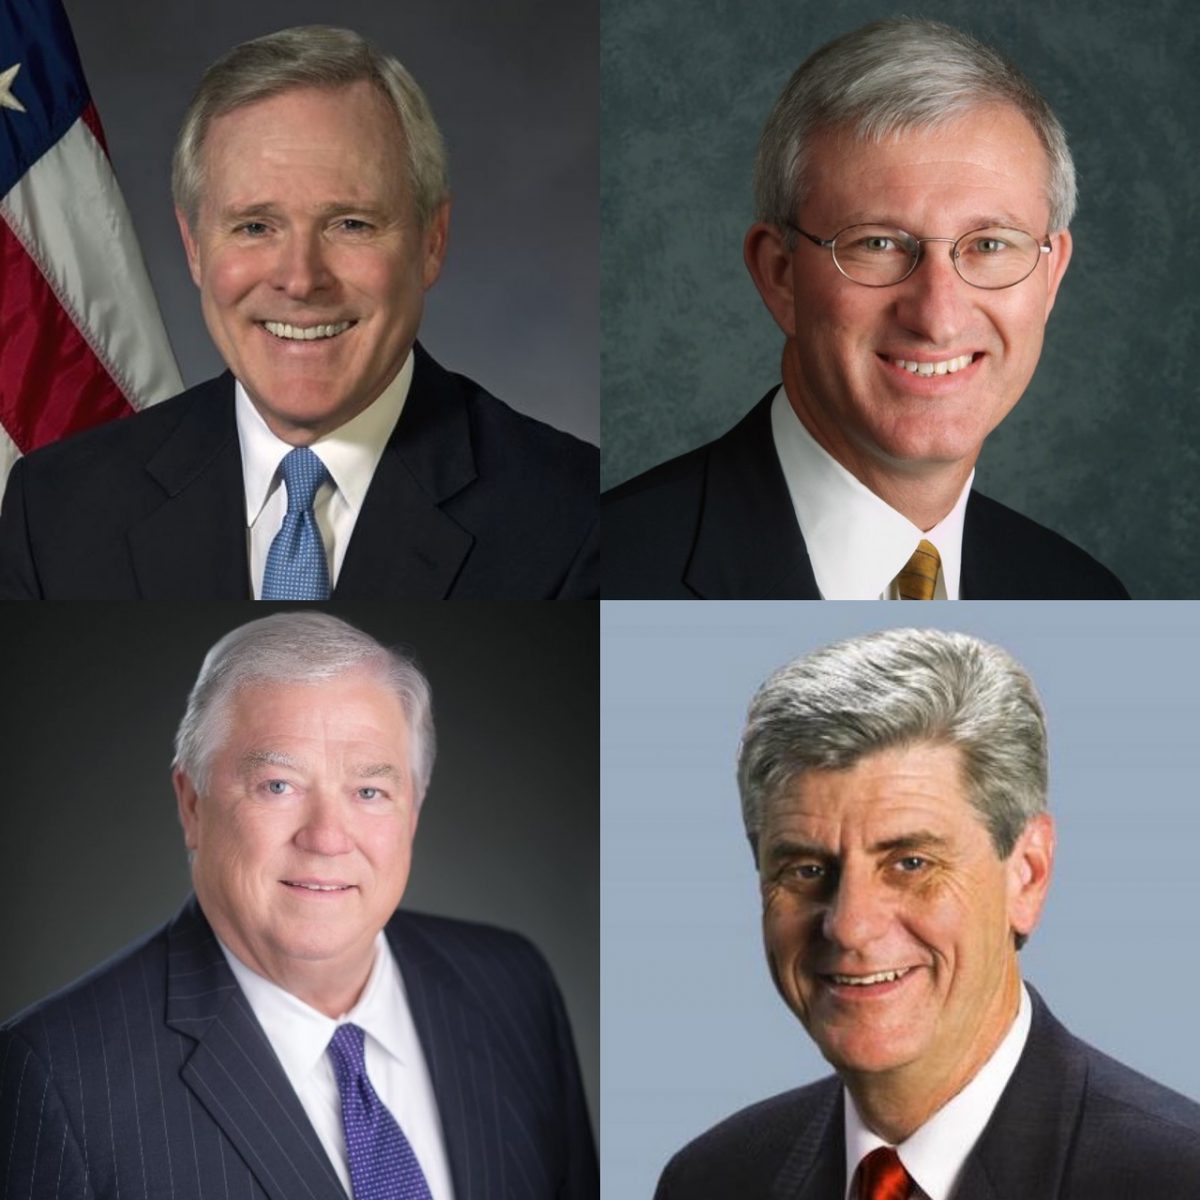 Four former governors join the conversation